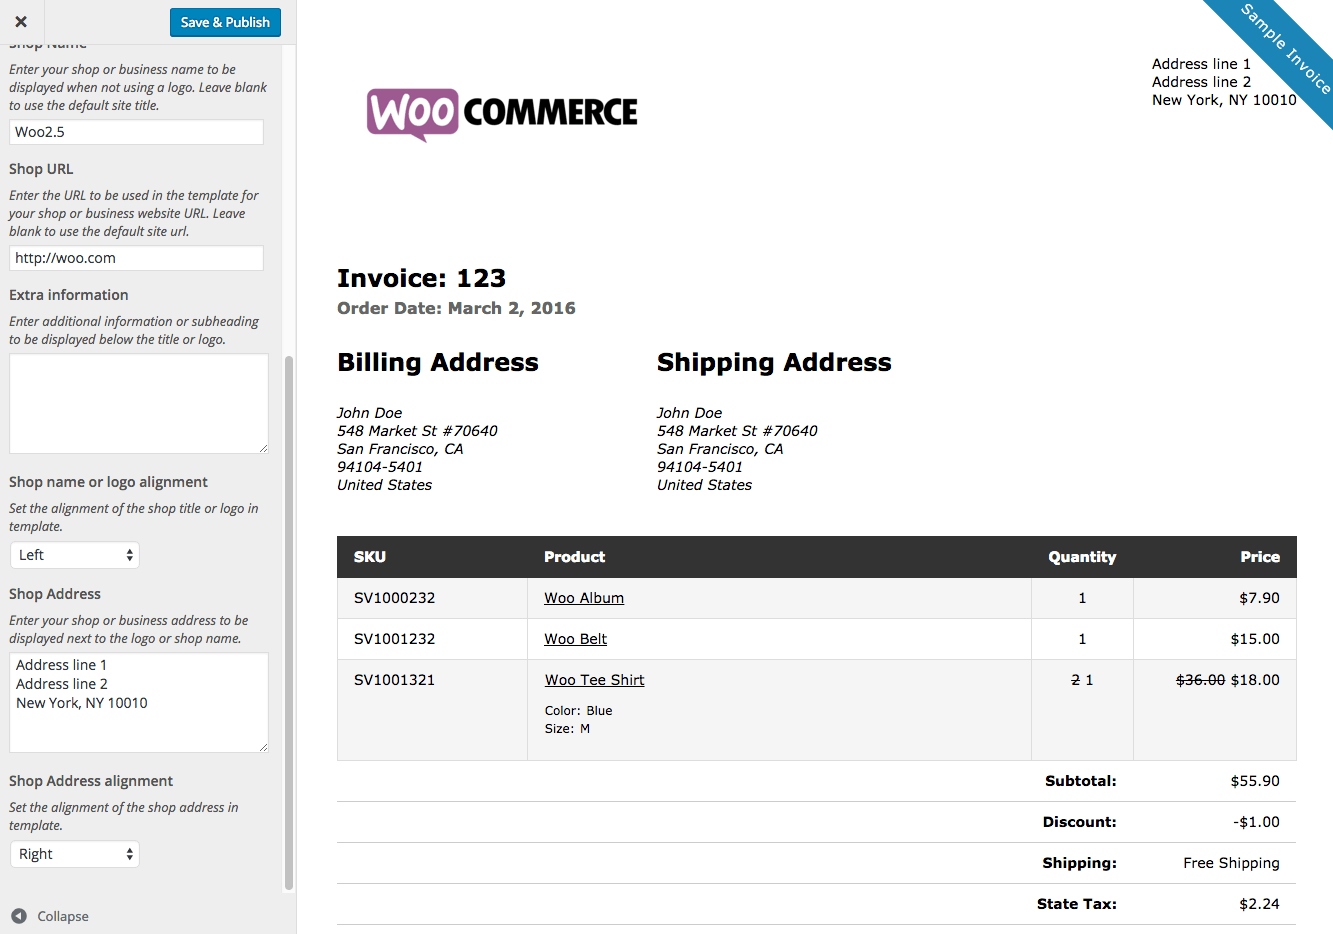 Shopdesignsus  Outstanding Woocommerce Print Invoices Amp Packing Lists  Woocommerce Docs With Goodlooking Woocommerce Print Invoices  Packing Lists Customizer With Cool Payment On Receipt Also Used Car Sale Receipt Template In Addition Free Receipt Template Excel And No Receipts For Tax Return As Well As Receipts For Child Care Additionally Receipt Printer And Cash Drawer From Docswoocommercecom With Shopdesignsus  Goodlooking Woocommerce Print Invoices Amp Packing Lists  Woocommerce Docs With Cool Woocommerce Print Invoices  Packing Lists Customizer And Outstanding Payment On Receipt Also Used Car Sale Receipt Template In Addition Free Receipt Template Excel From Docswoocommercecom